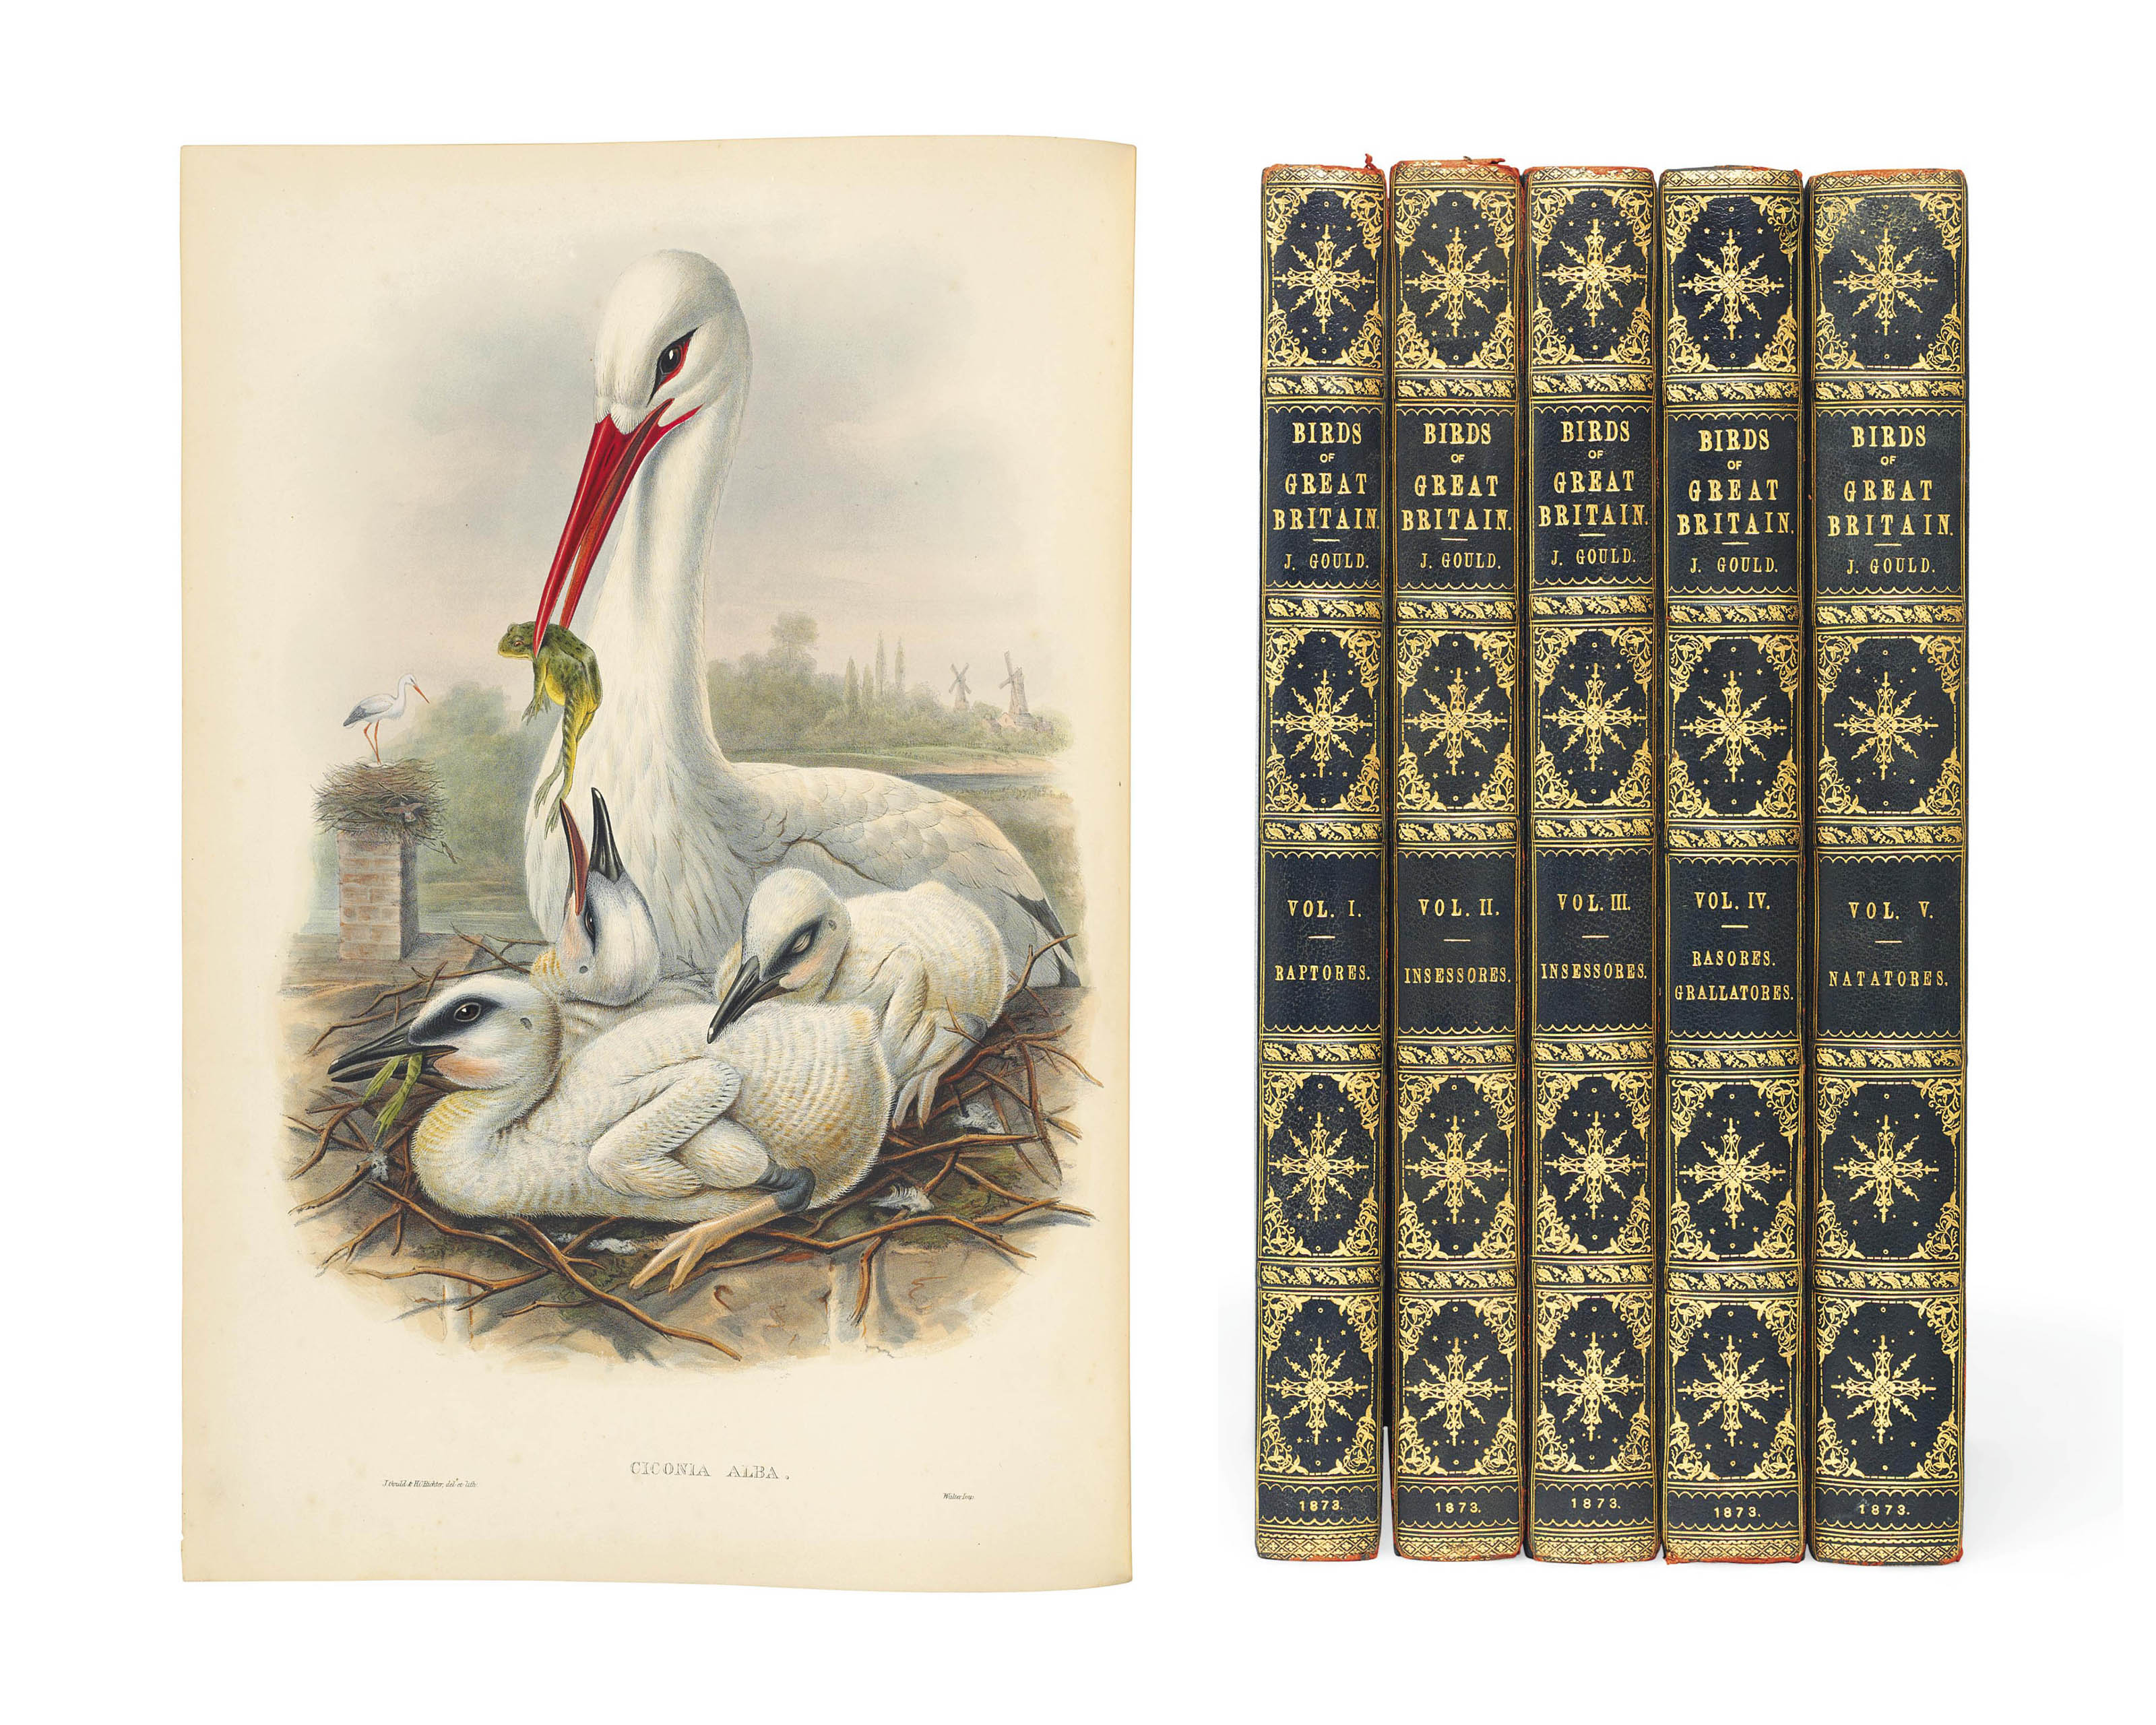 GOULD, John (1804-1881). The Birds of Great Britain. London: Taylor and Francis for the author, [1862]-1873.